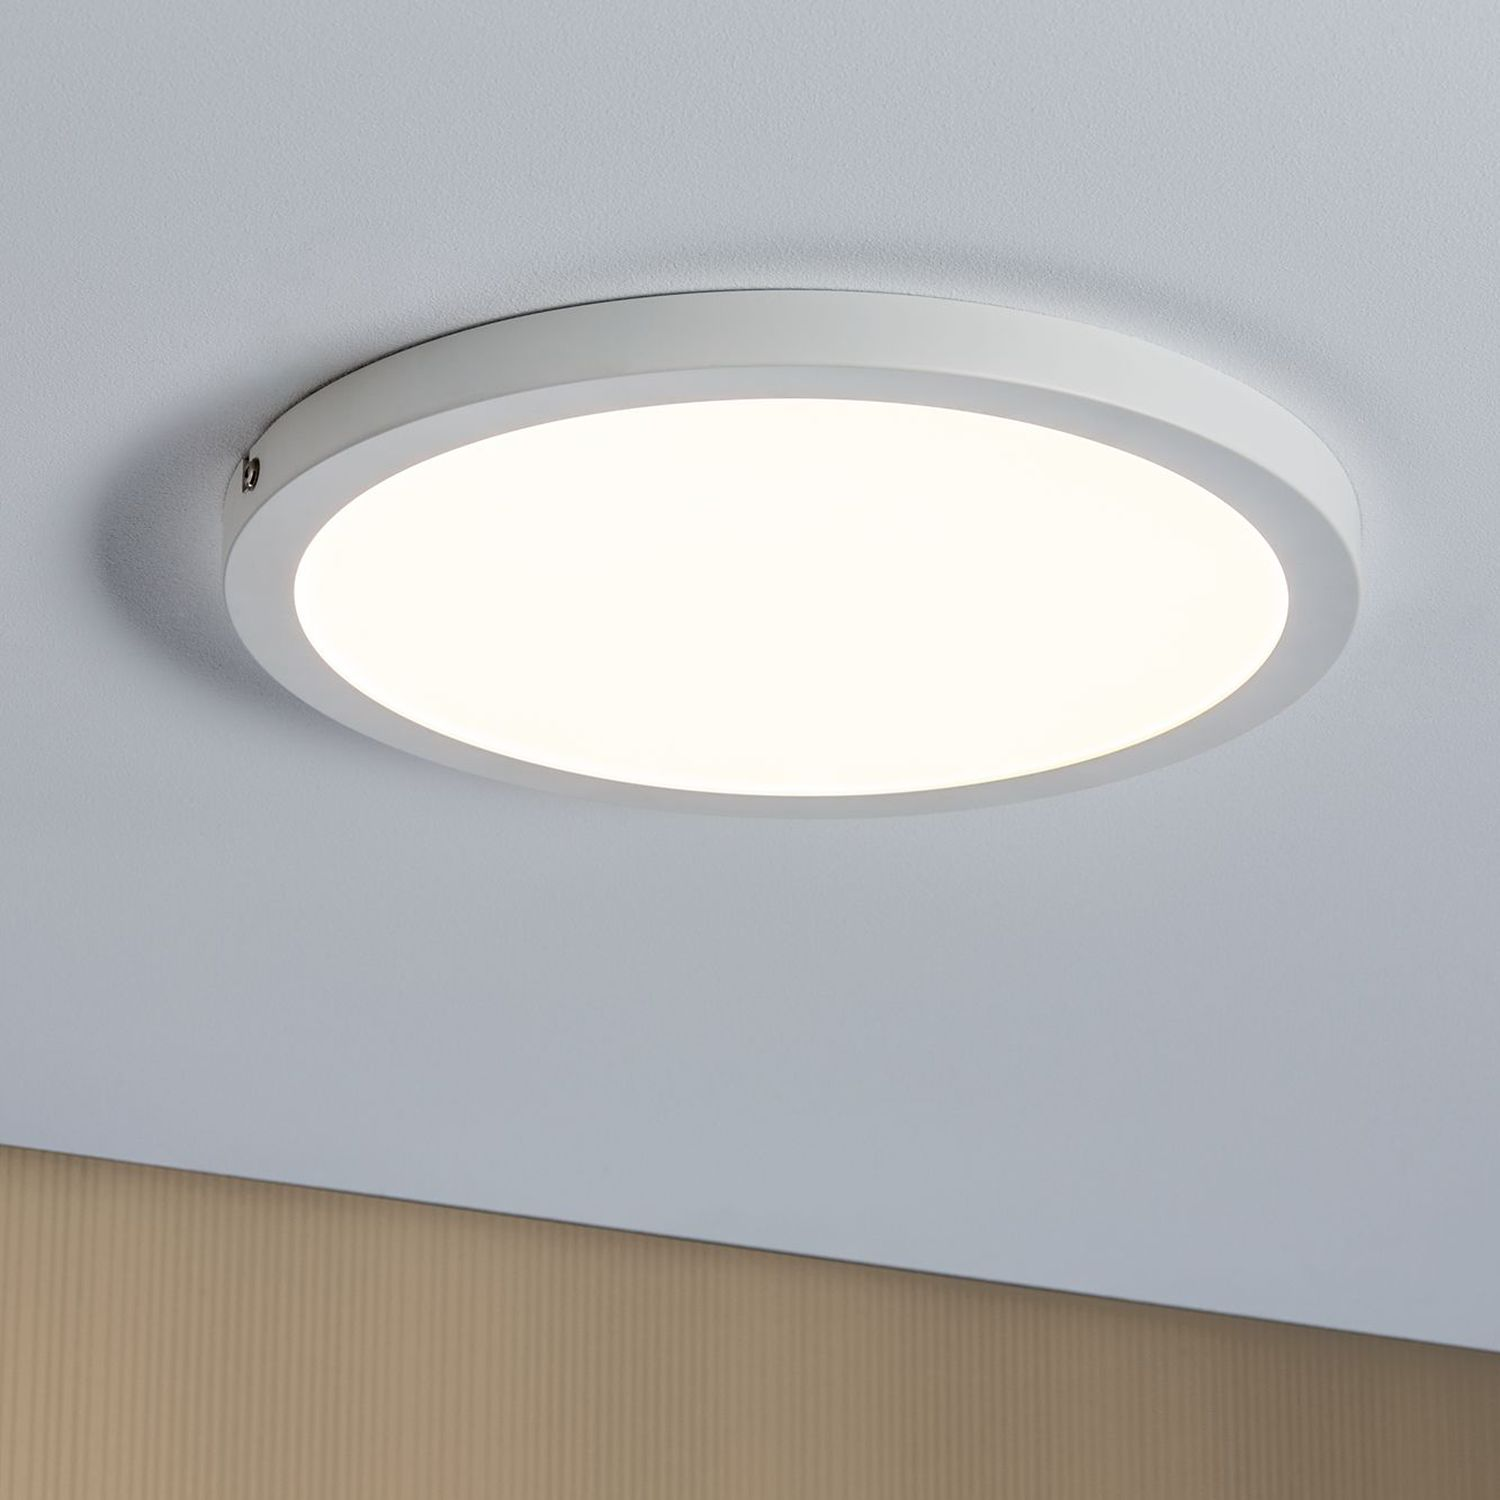 home24 LED-Deckenleuchte Panel VI